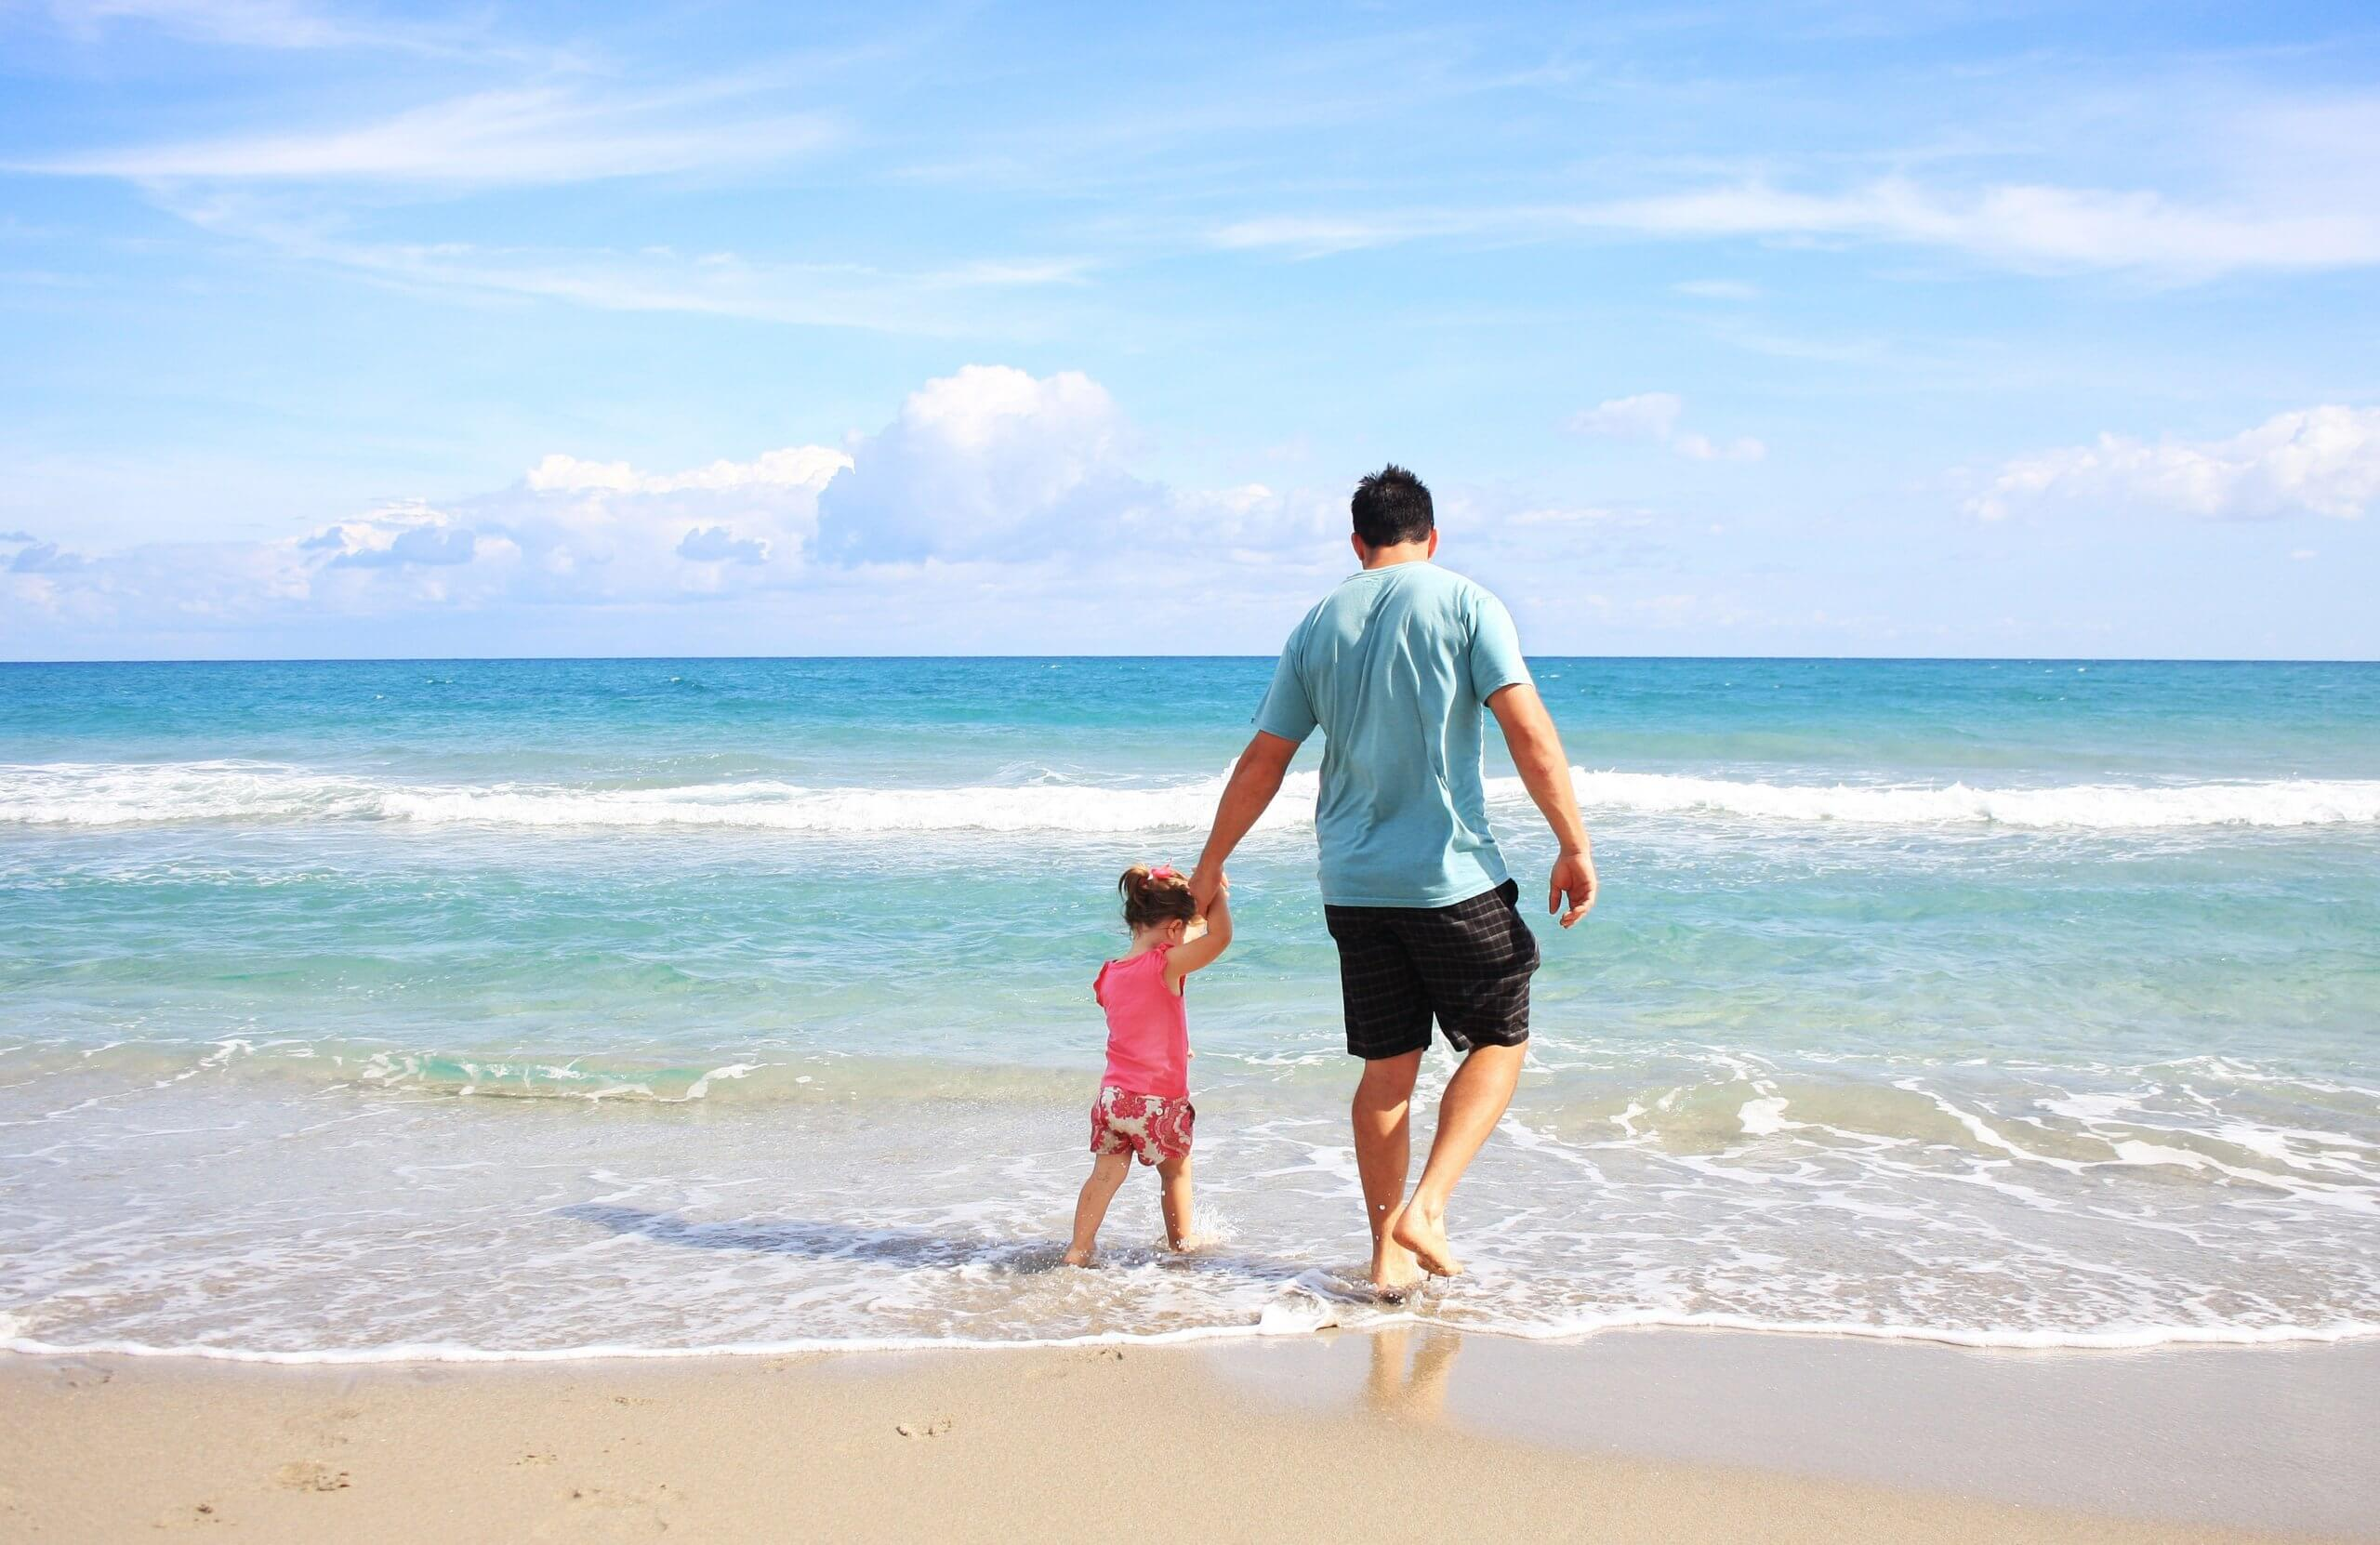 Child with parent on beach during summer visitation